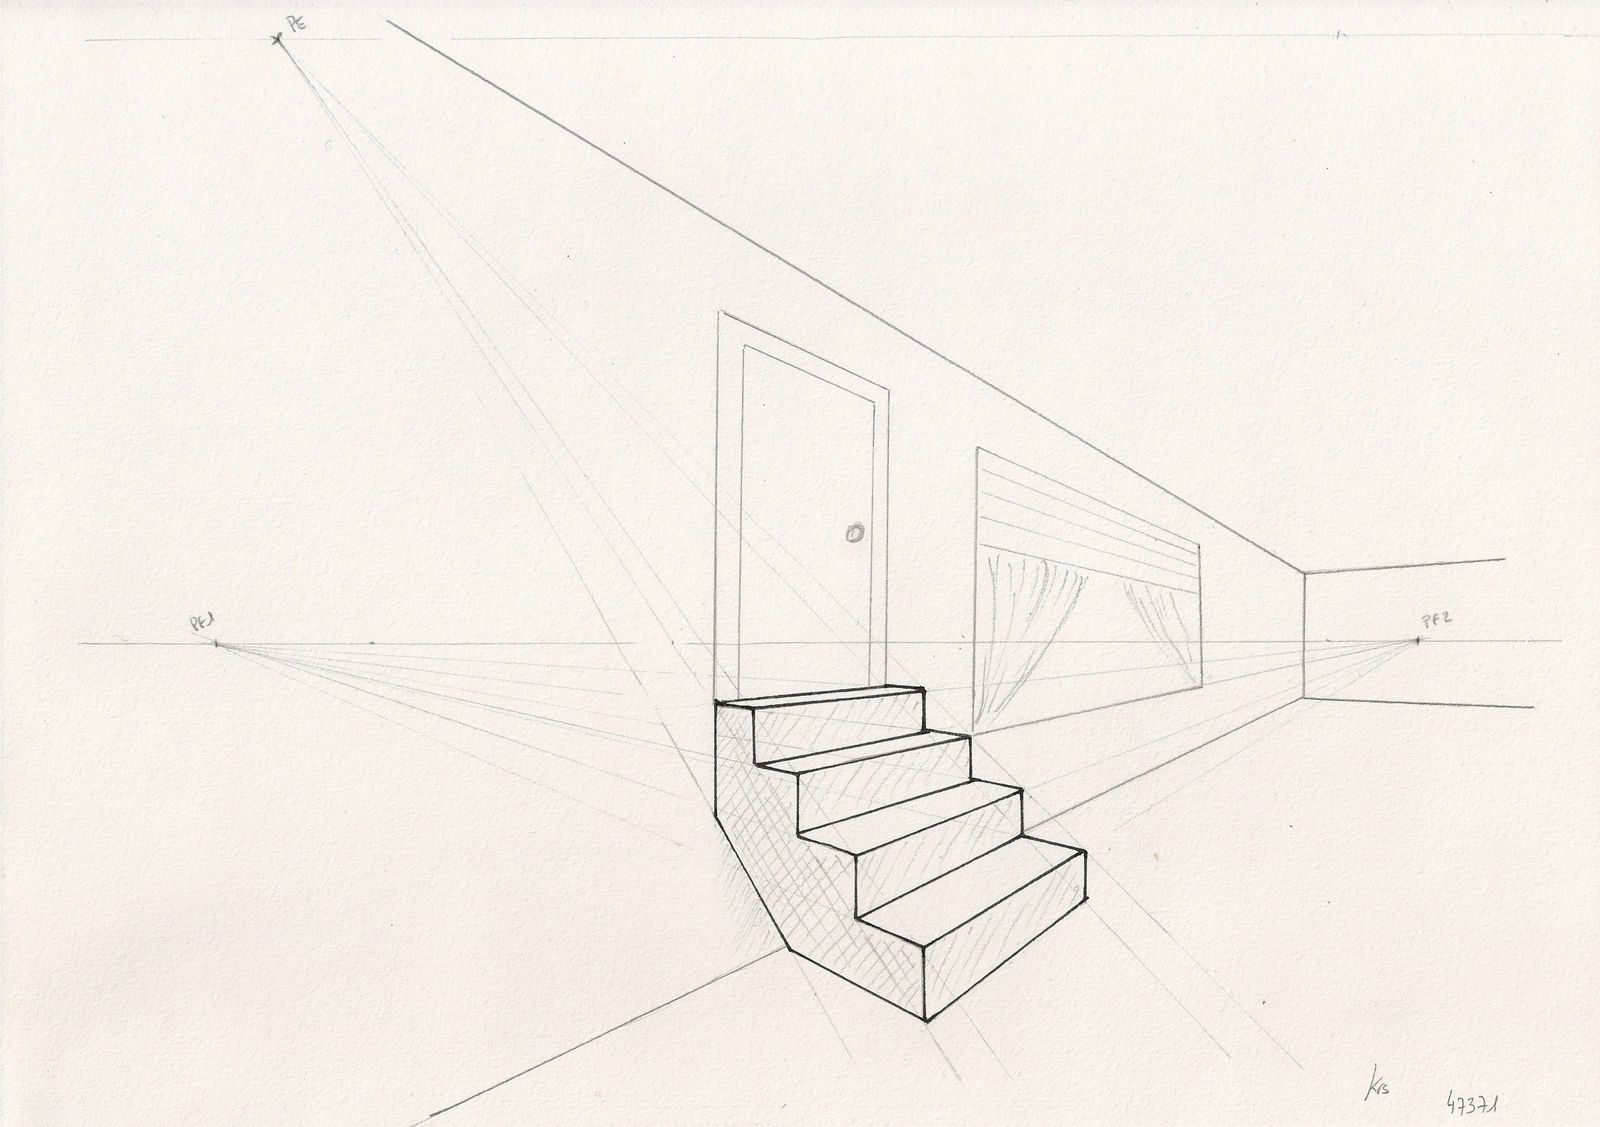 Perspective Escalier : Initiation au dessin en perspective christelle albrecht